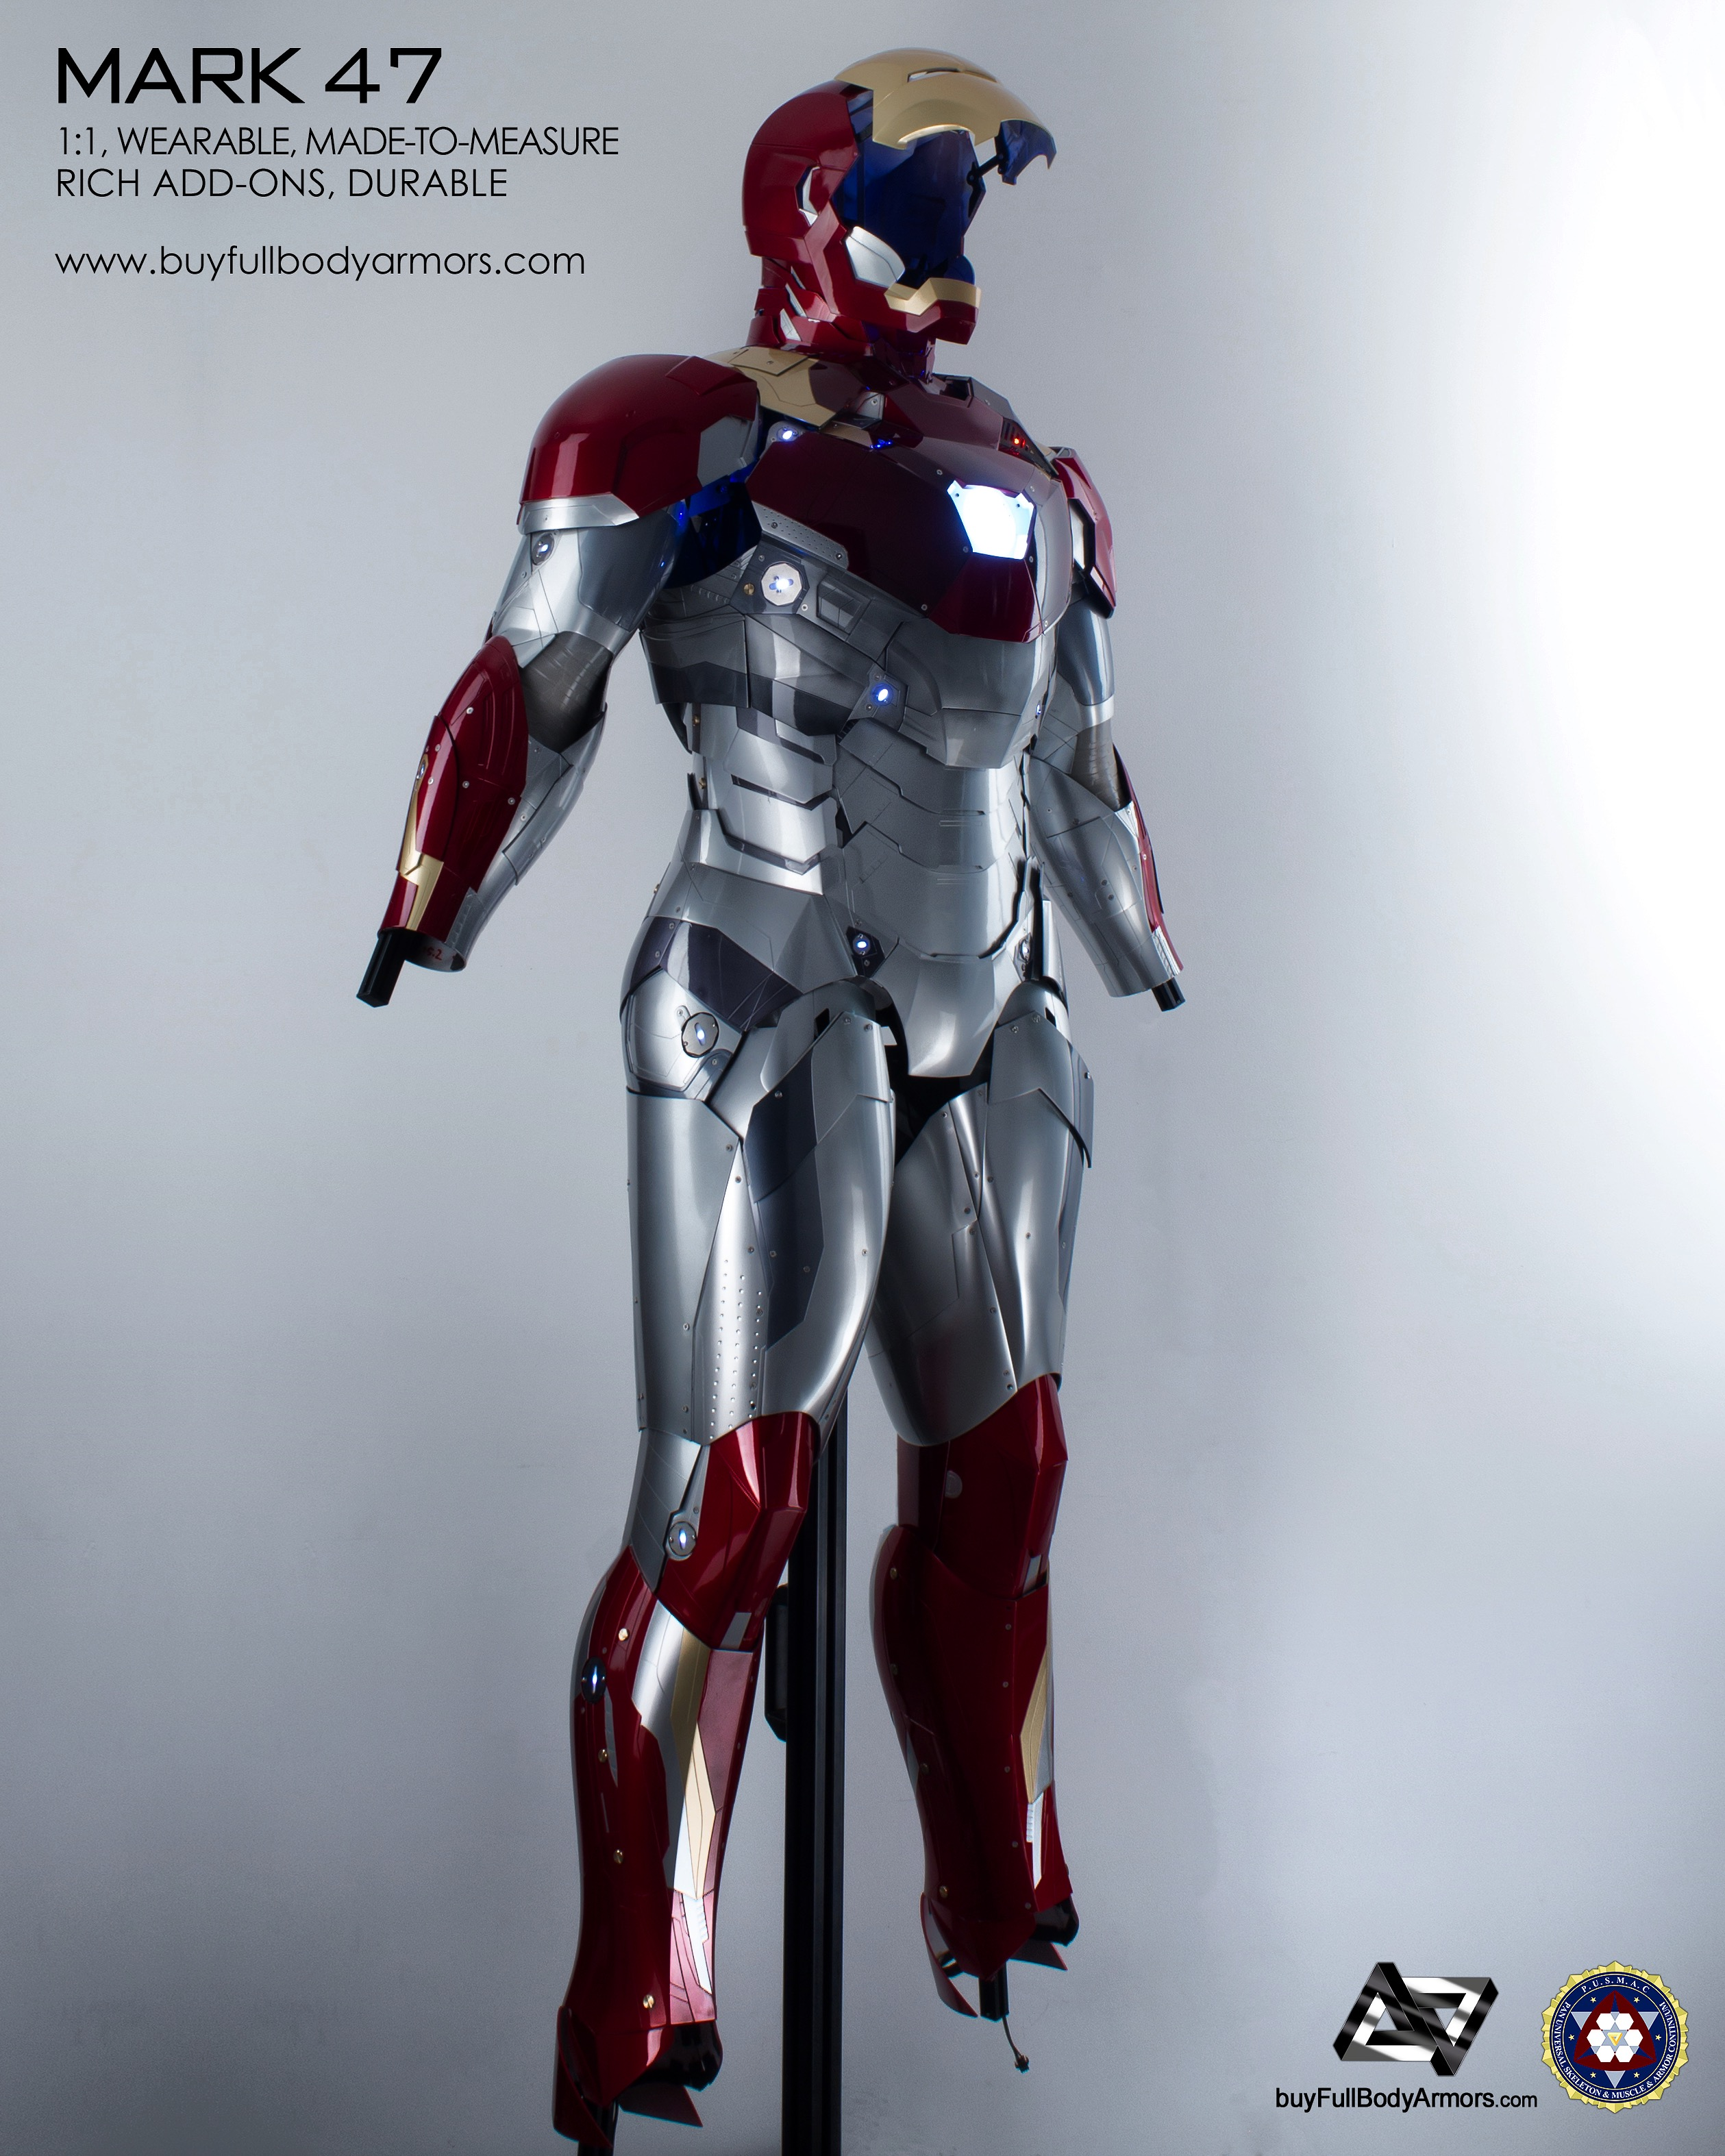 wearable_iron_man_mark_47_armor_costume_with_no_hands_shoes_ins